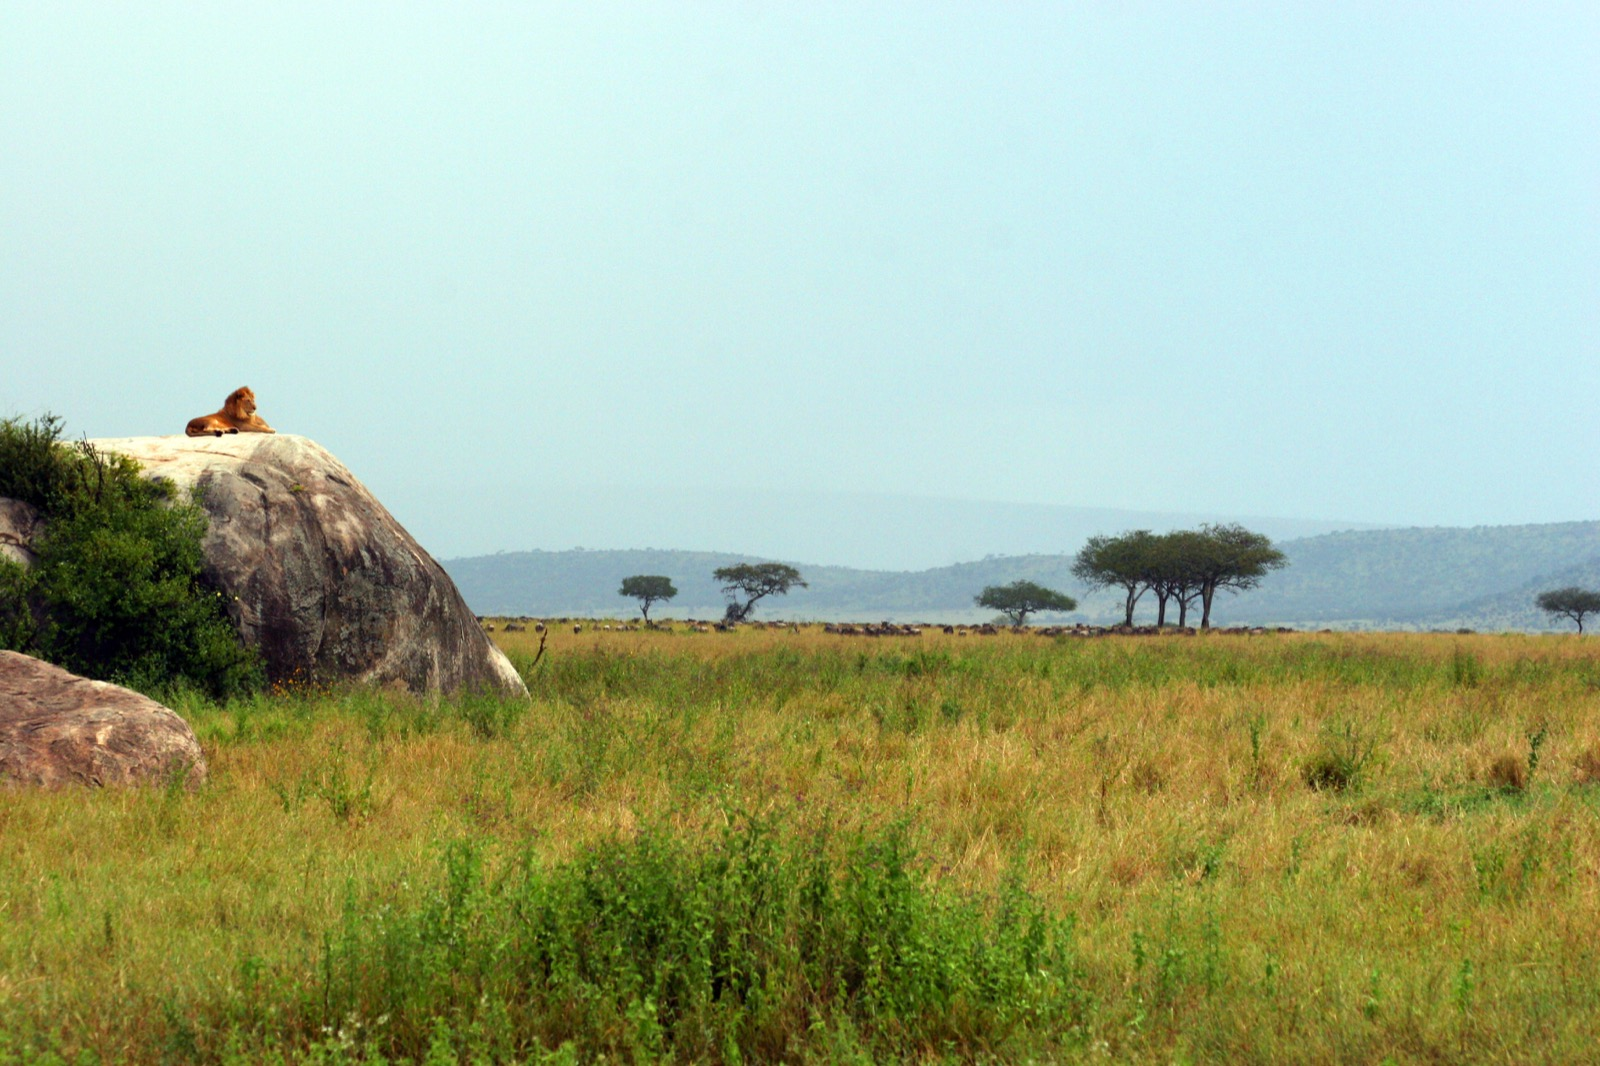 A male lion is perched atop a large rock in the African Serengeti.